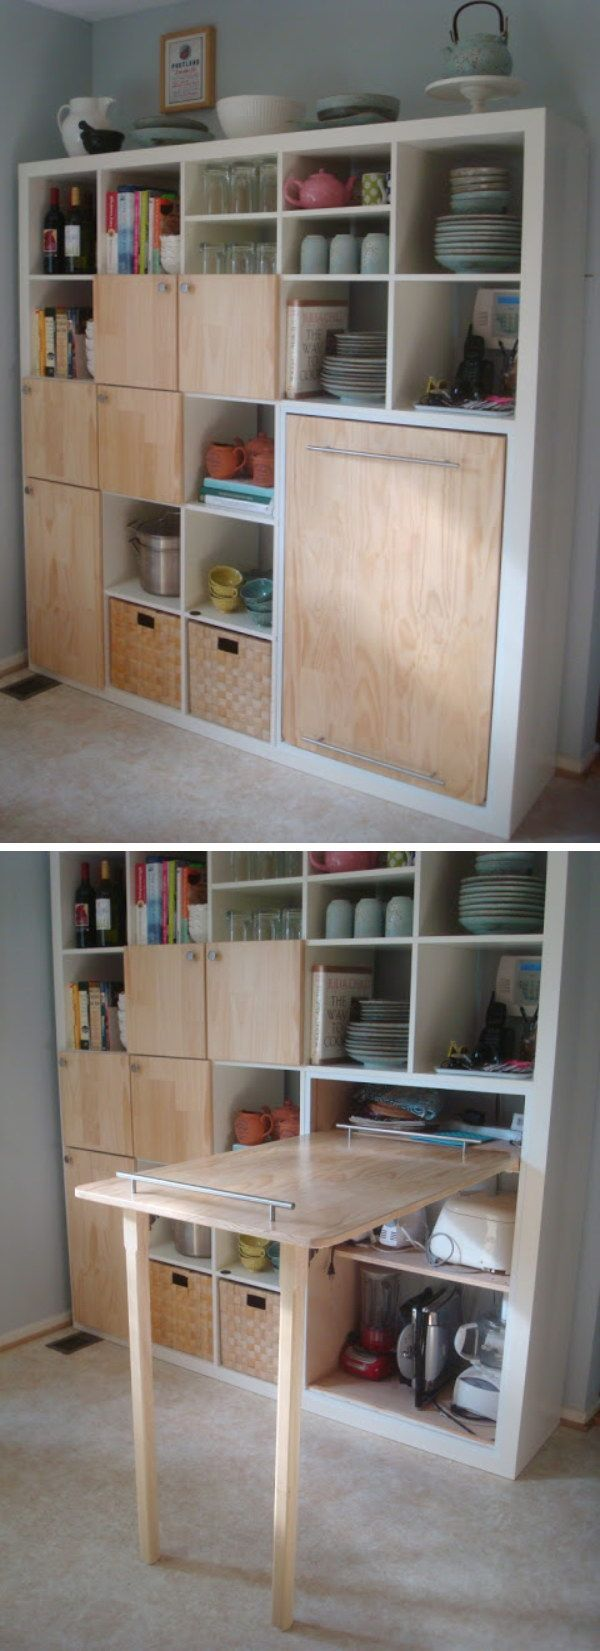 Living spaces for many of us are becoming smaller. We are often facing the same problem: how to utilize a small space and make it functional and pleasant. | Life Hacks For Living Large In Small Spaces - IdeaStand